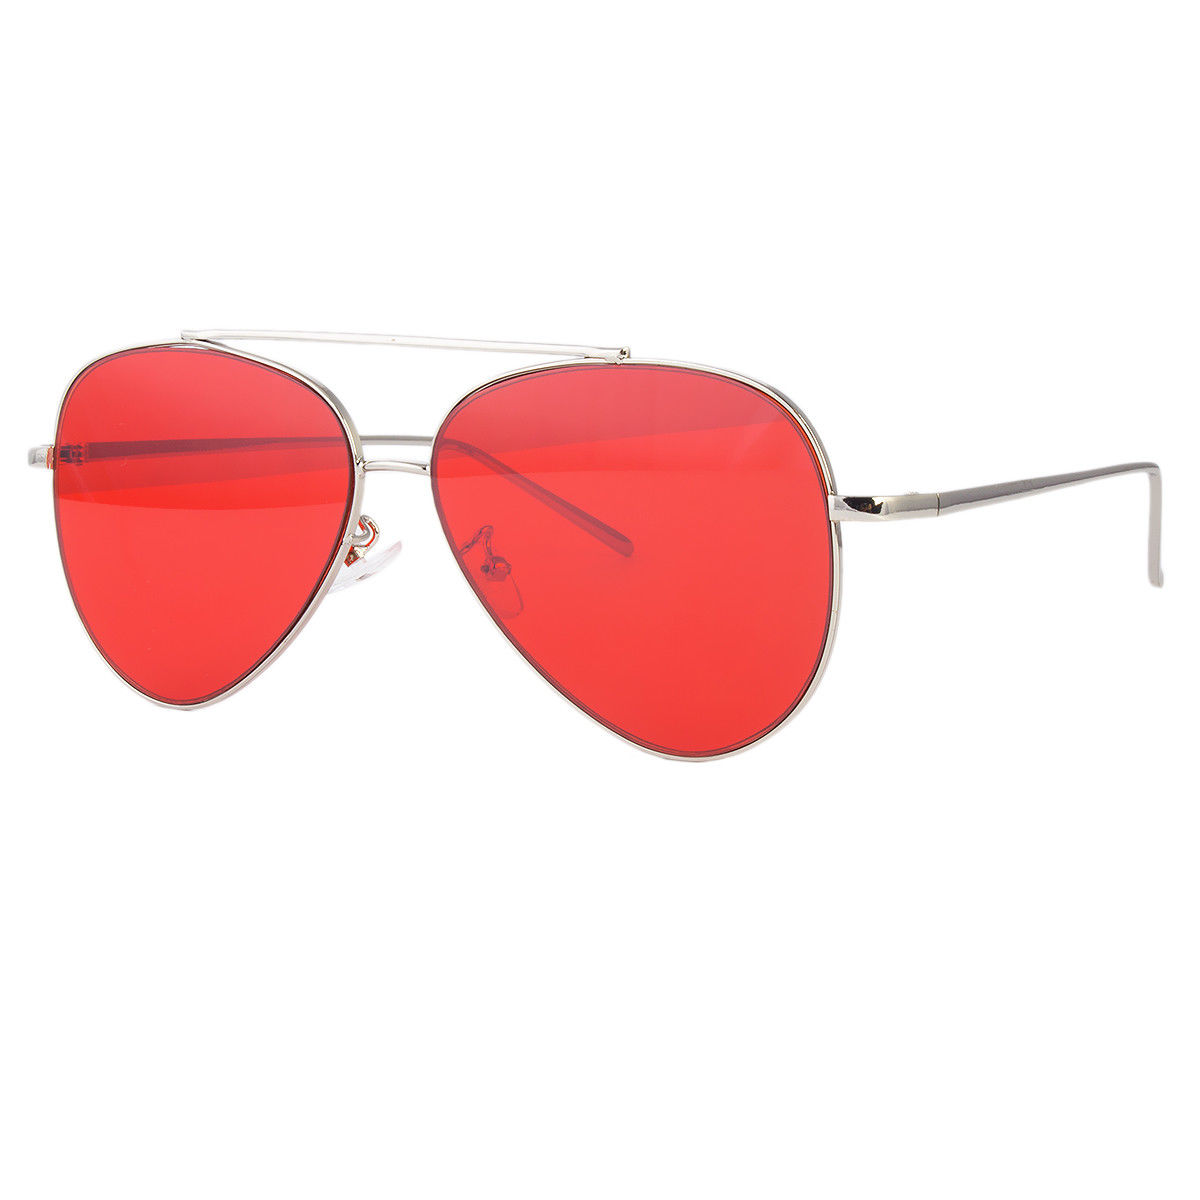 eb707b7732dab Sunny Shades - Retro Aviator Sunglasses Vintage RED GOLD Lens Men Women  Fashion Frame Glasses - Walmart.com